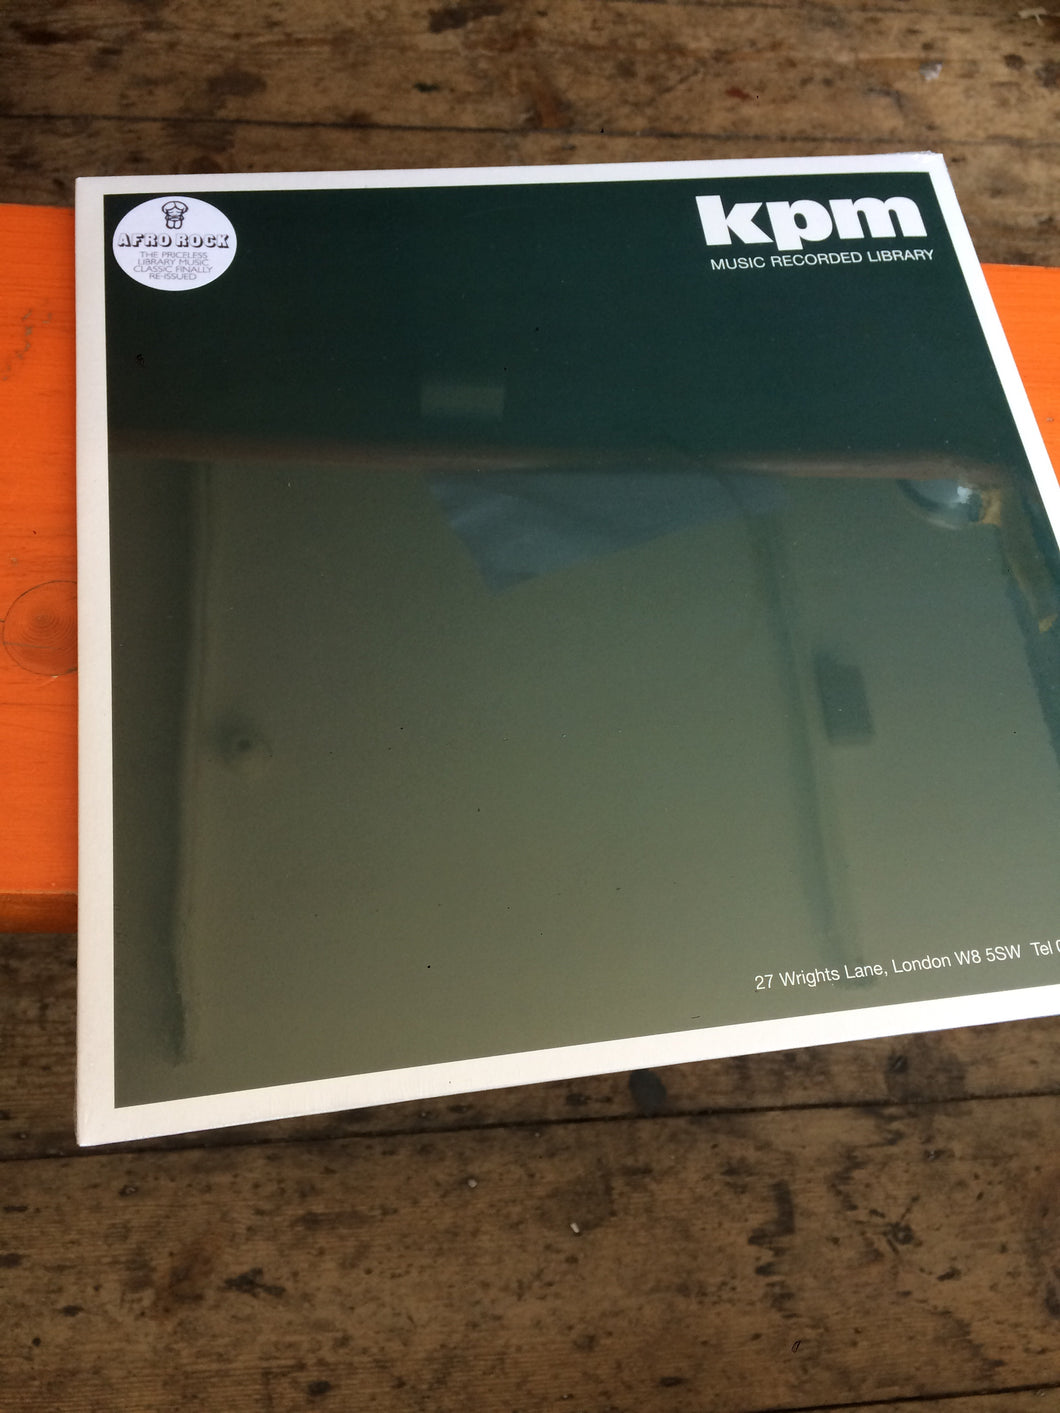 KPM Music Recorded Library - Afro Rock